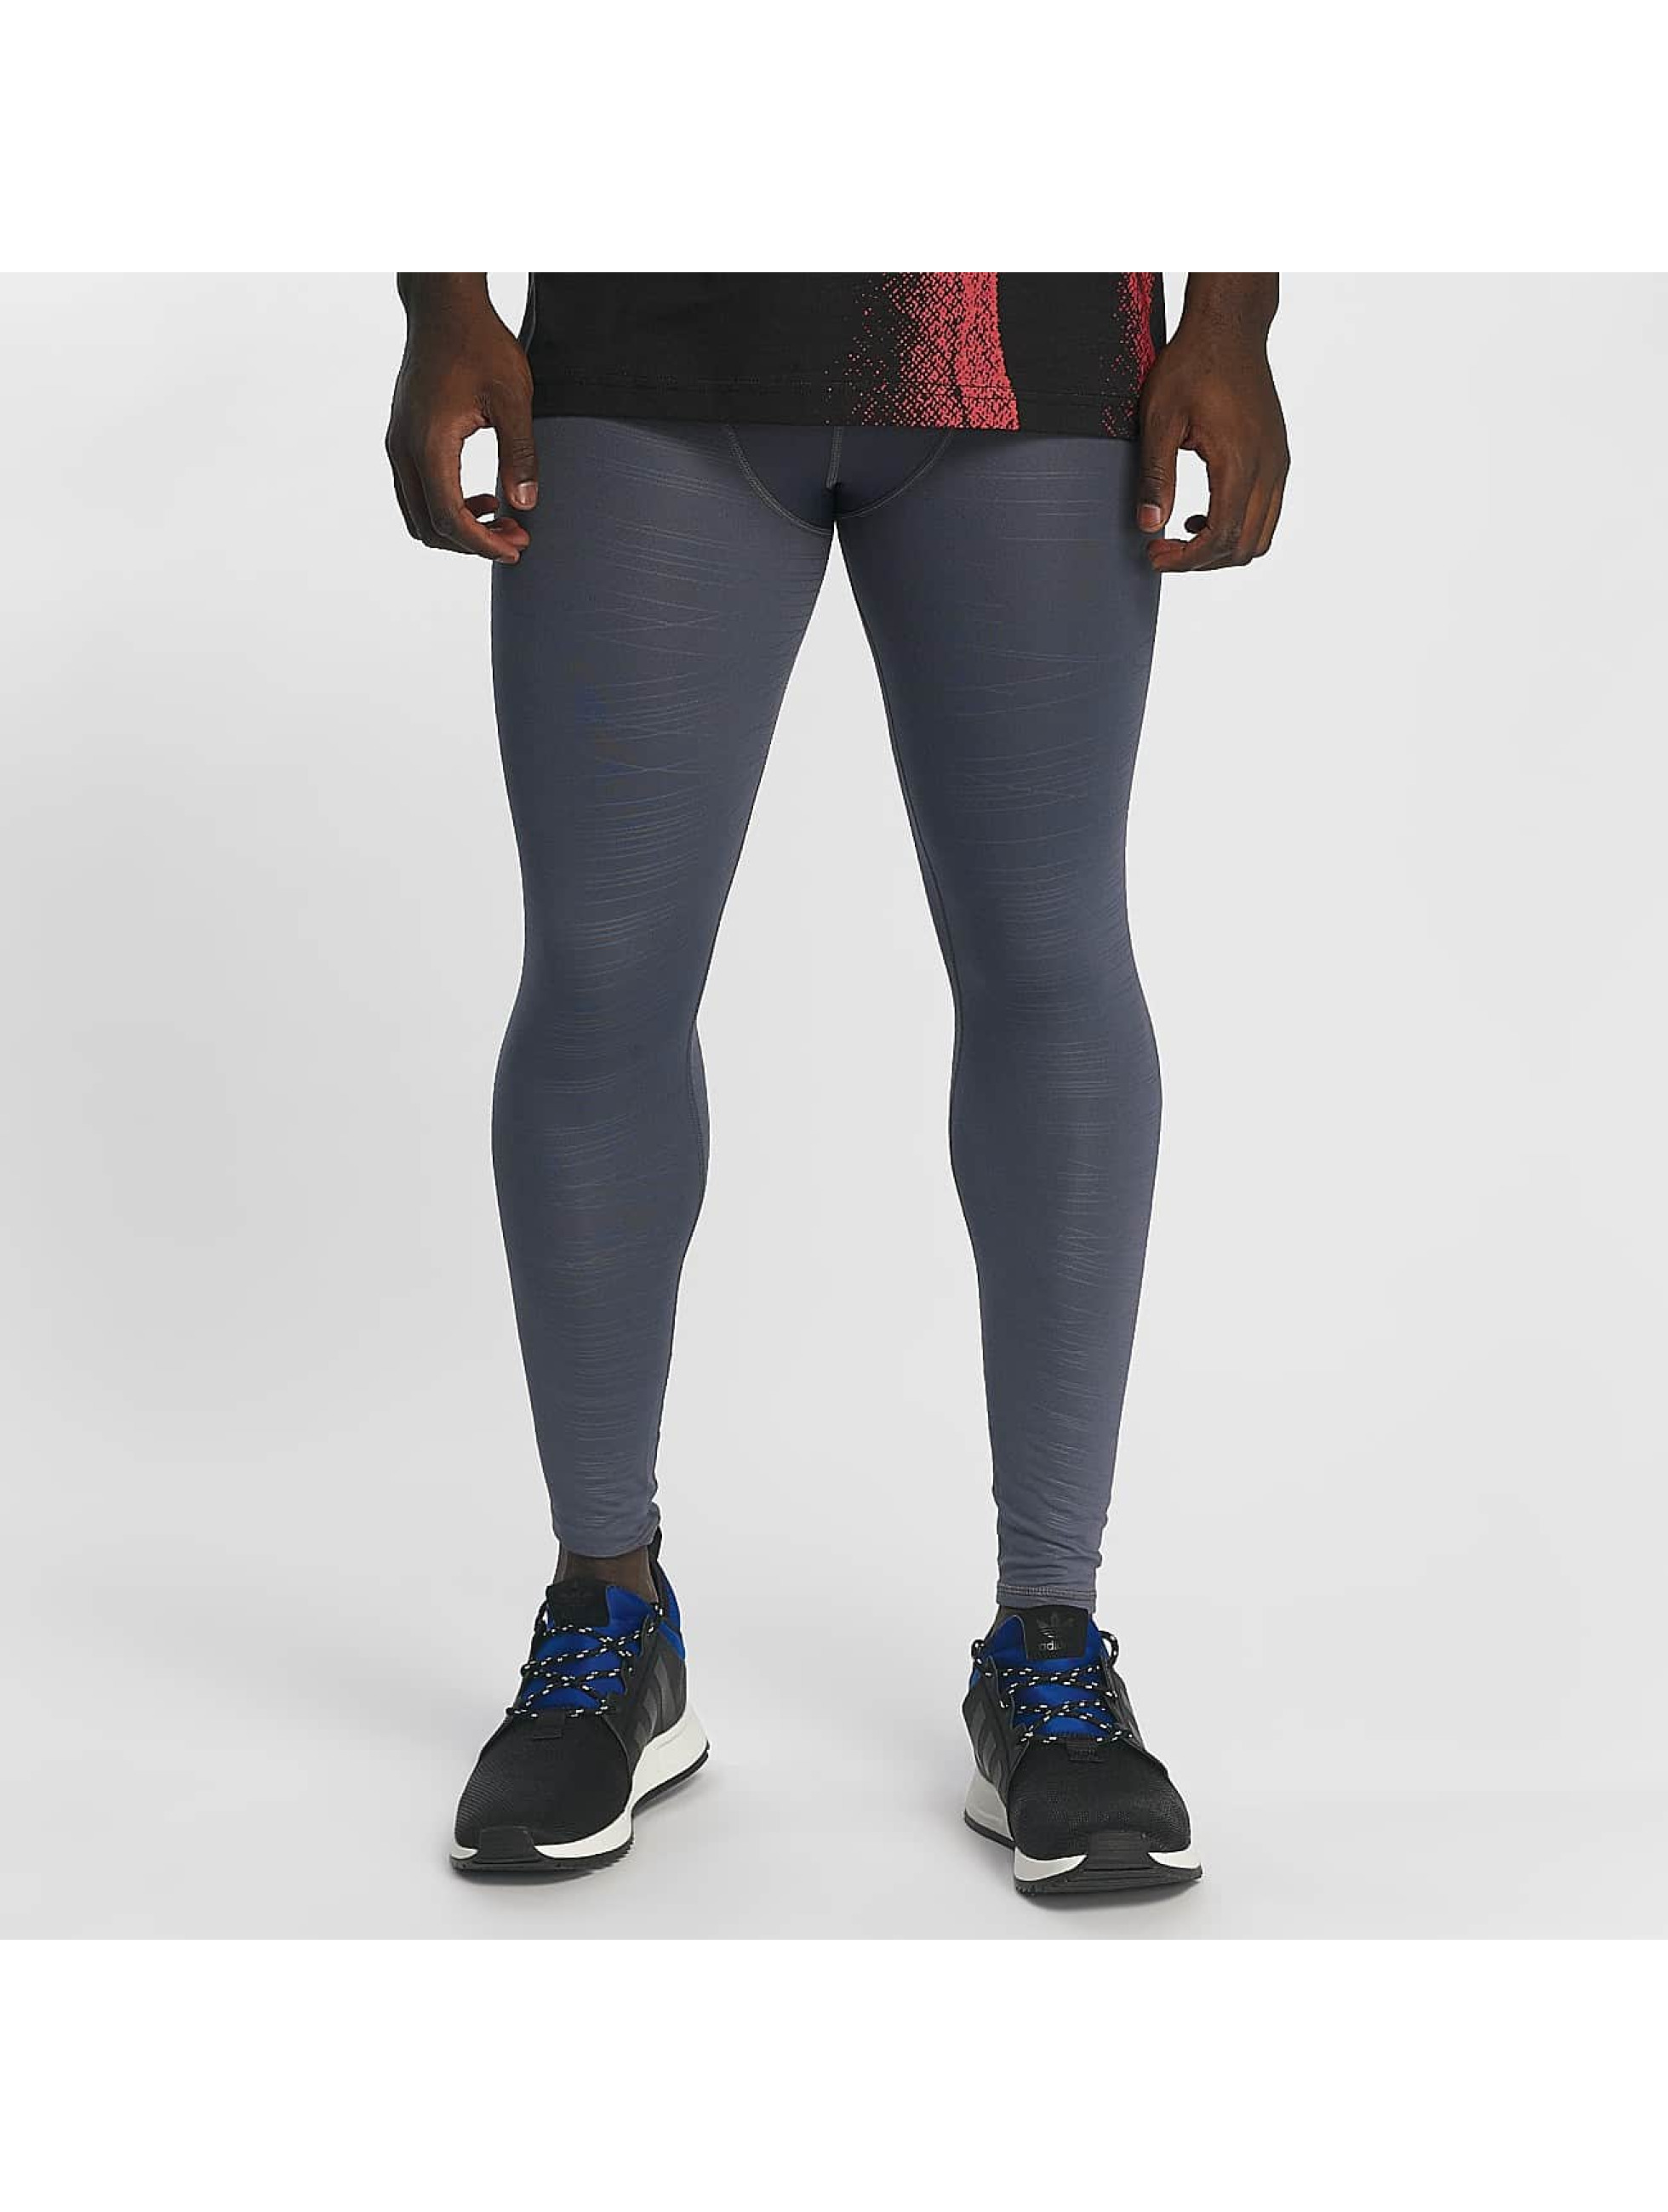 adidas Performance Männer Legging Techfit Long in grau